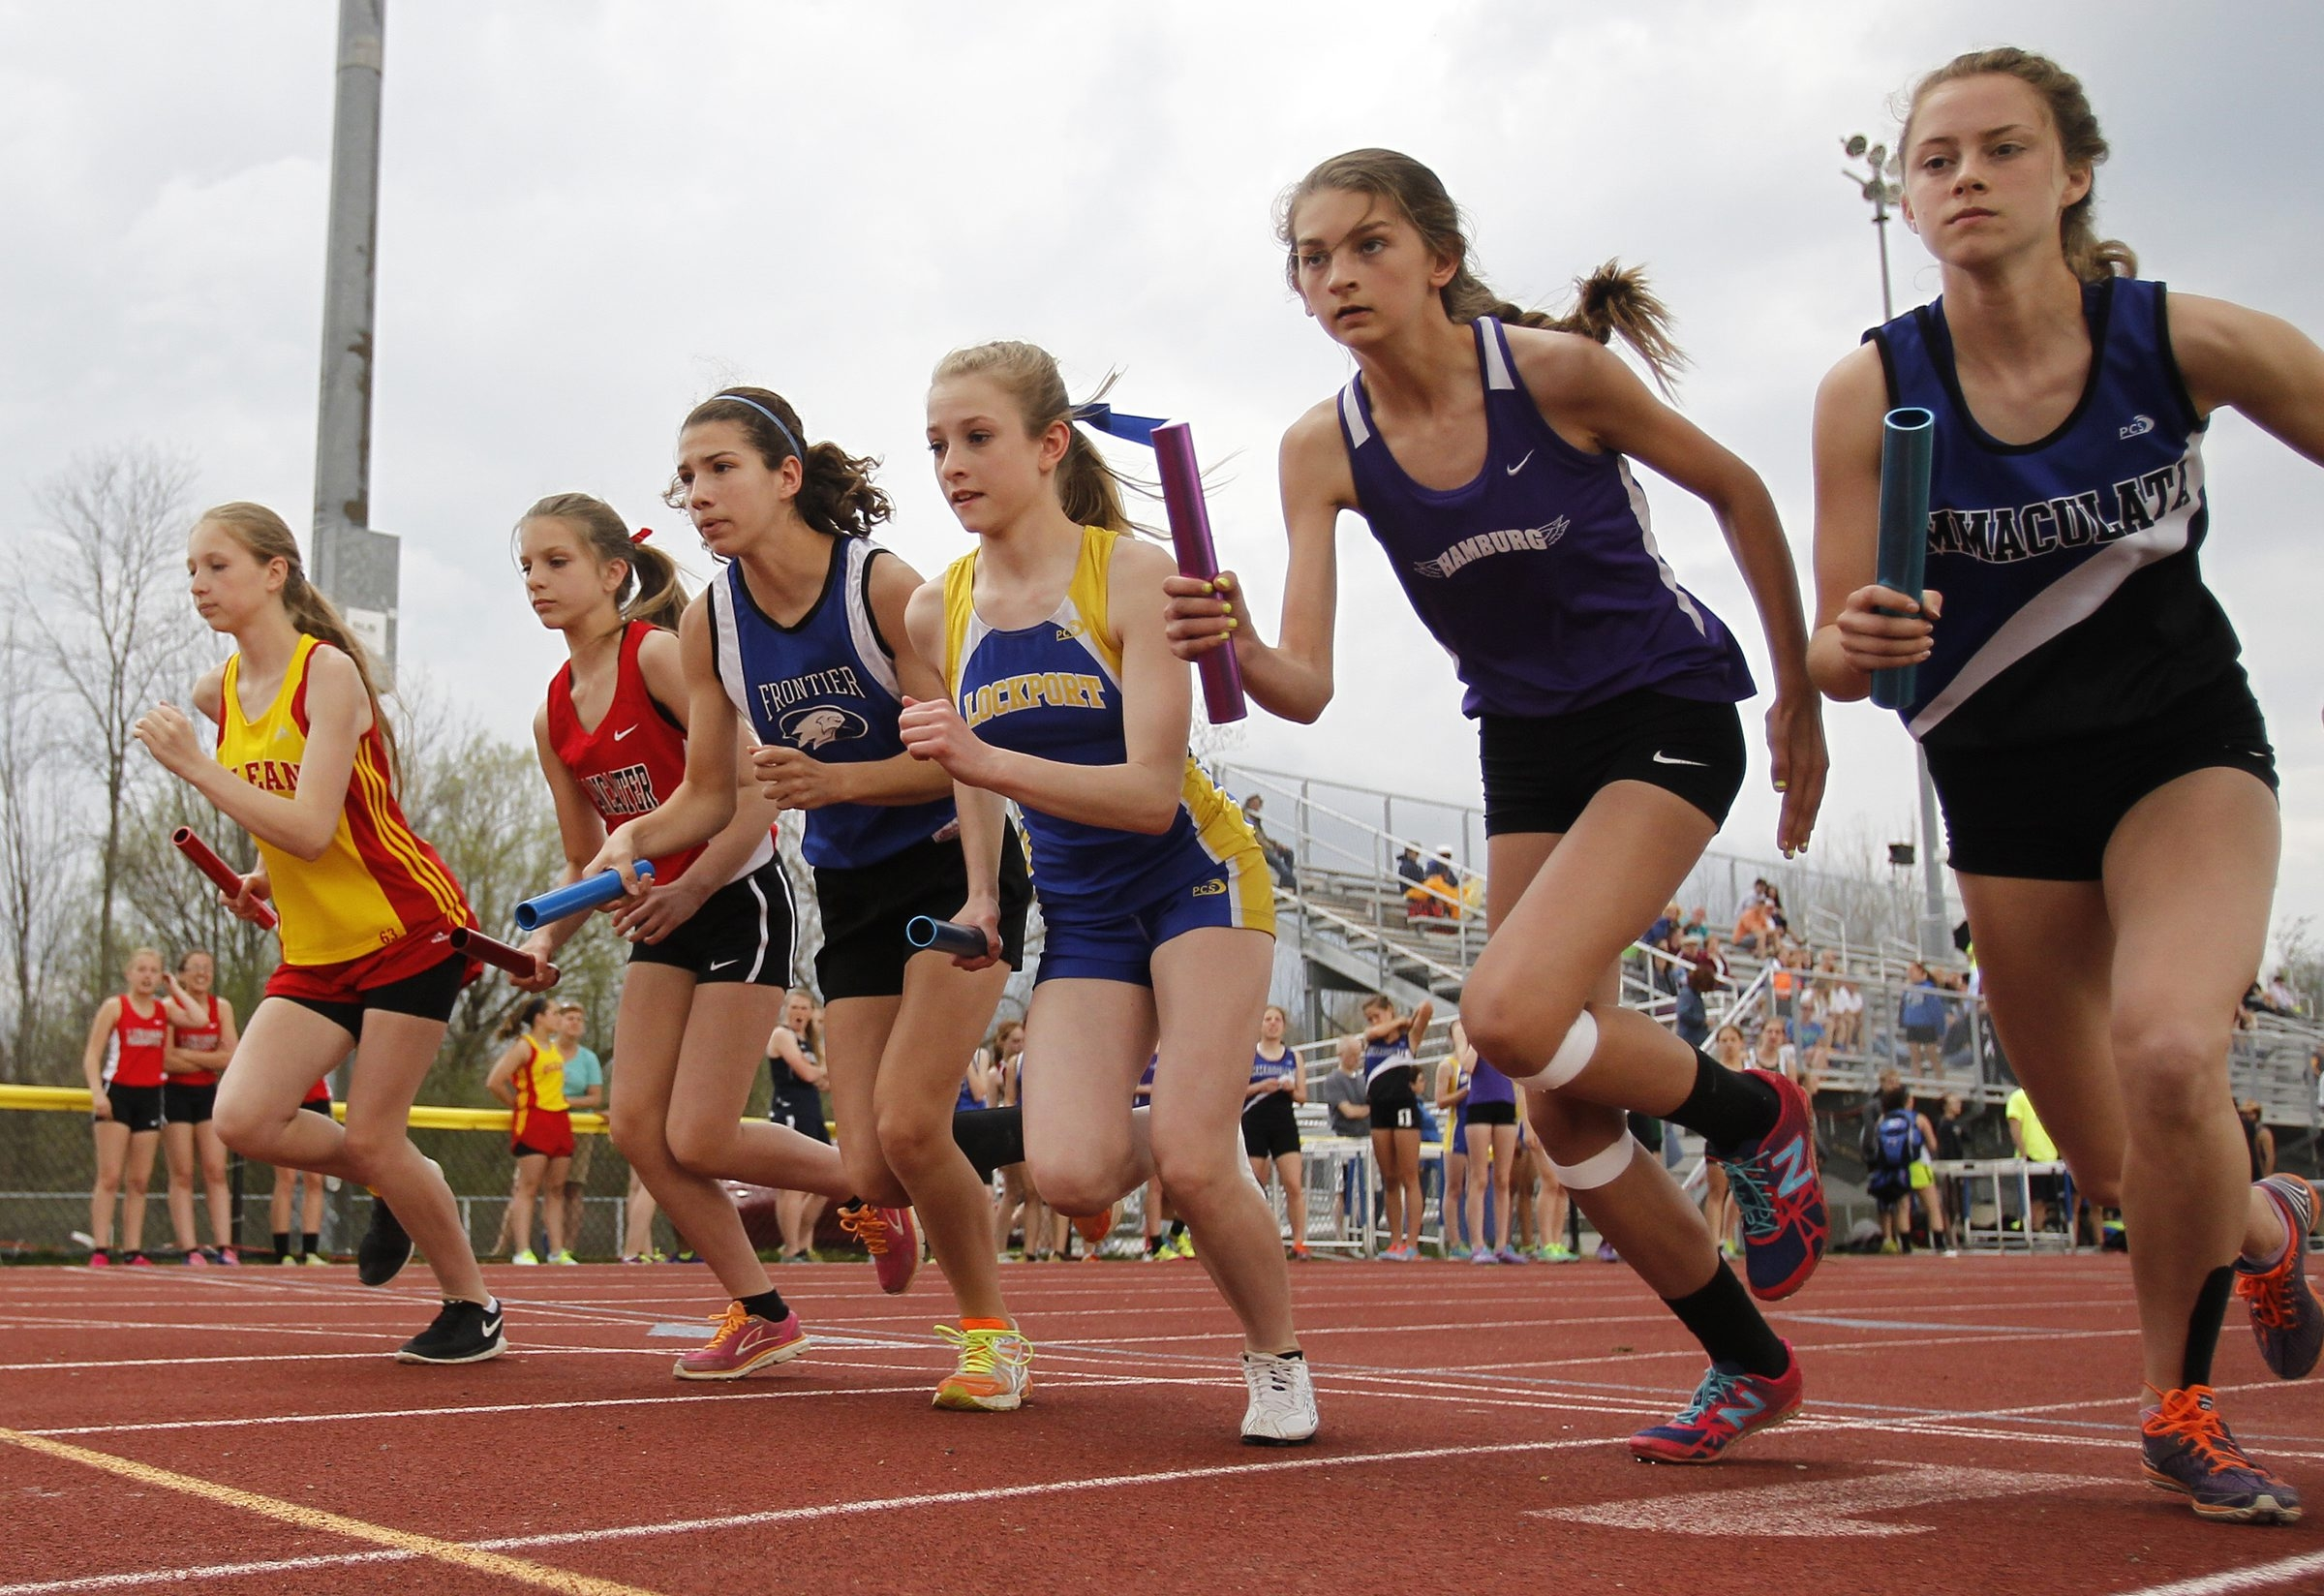 Runners start the first lap of the 4×800 relay during the Falcon Invitational at Frontier High School on Friday. Go to buffalonews.com for a photo gallery.